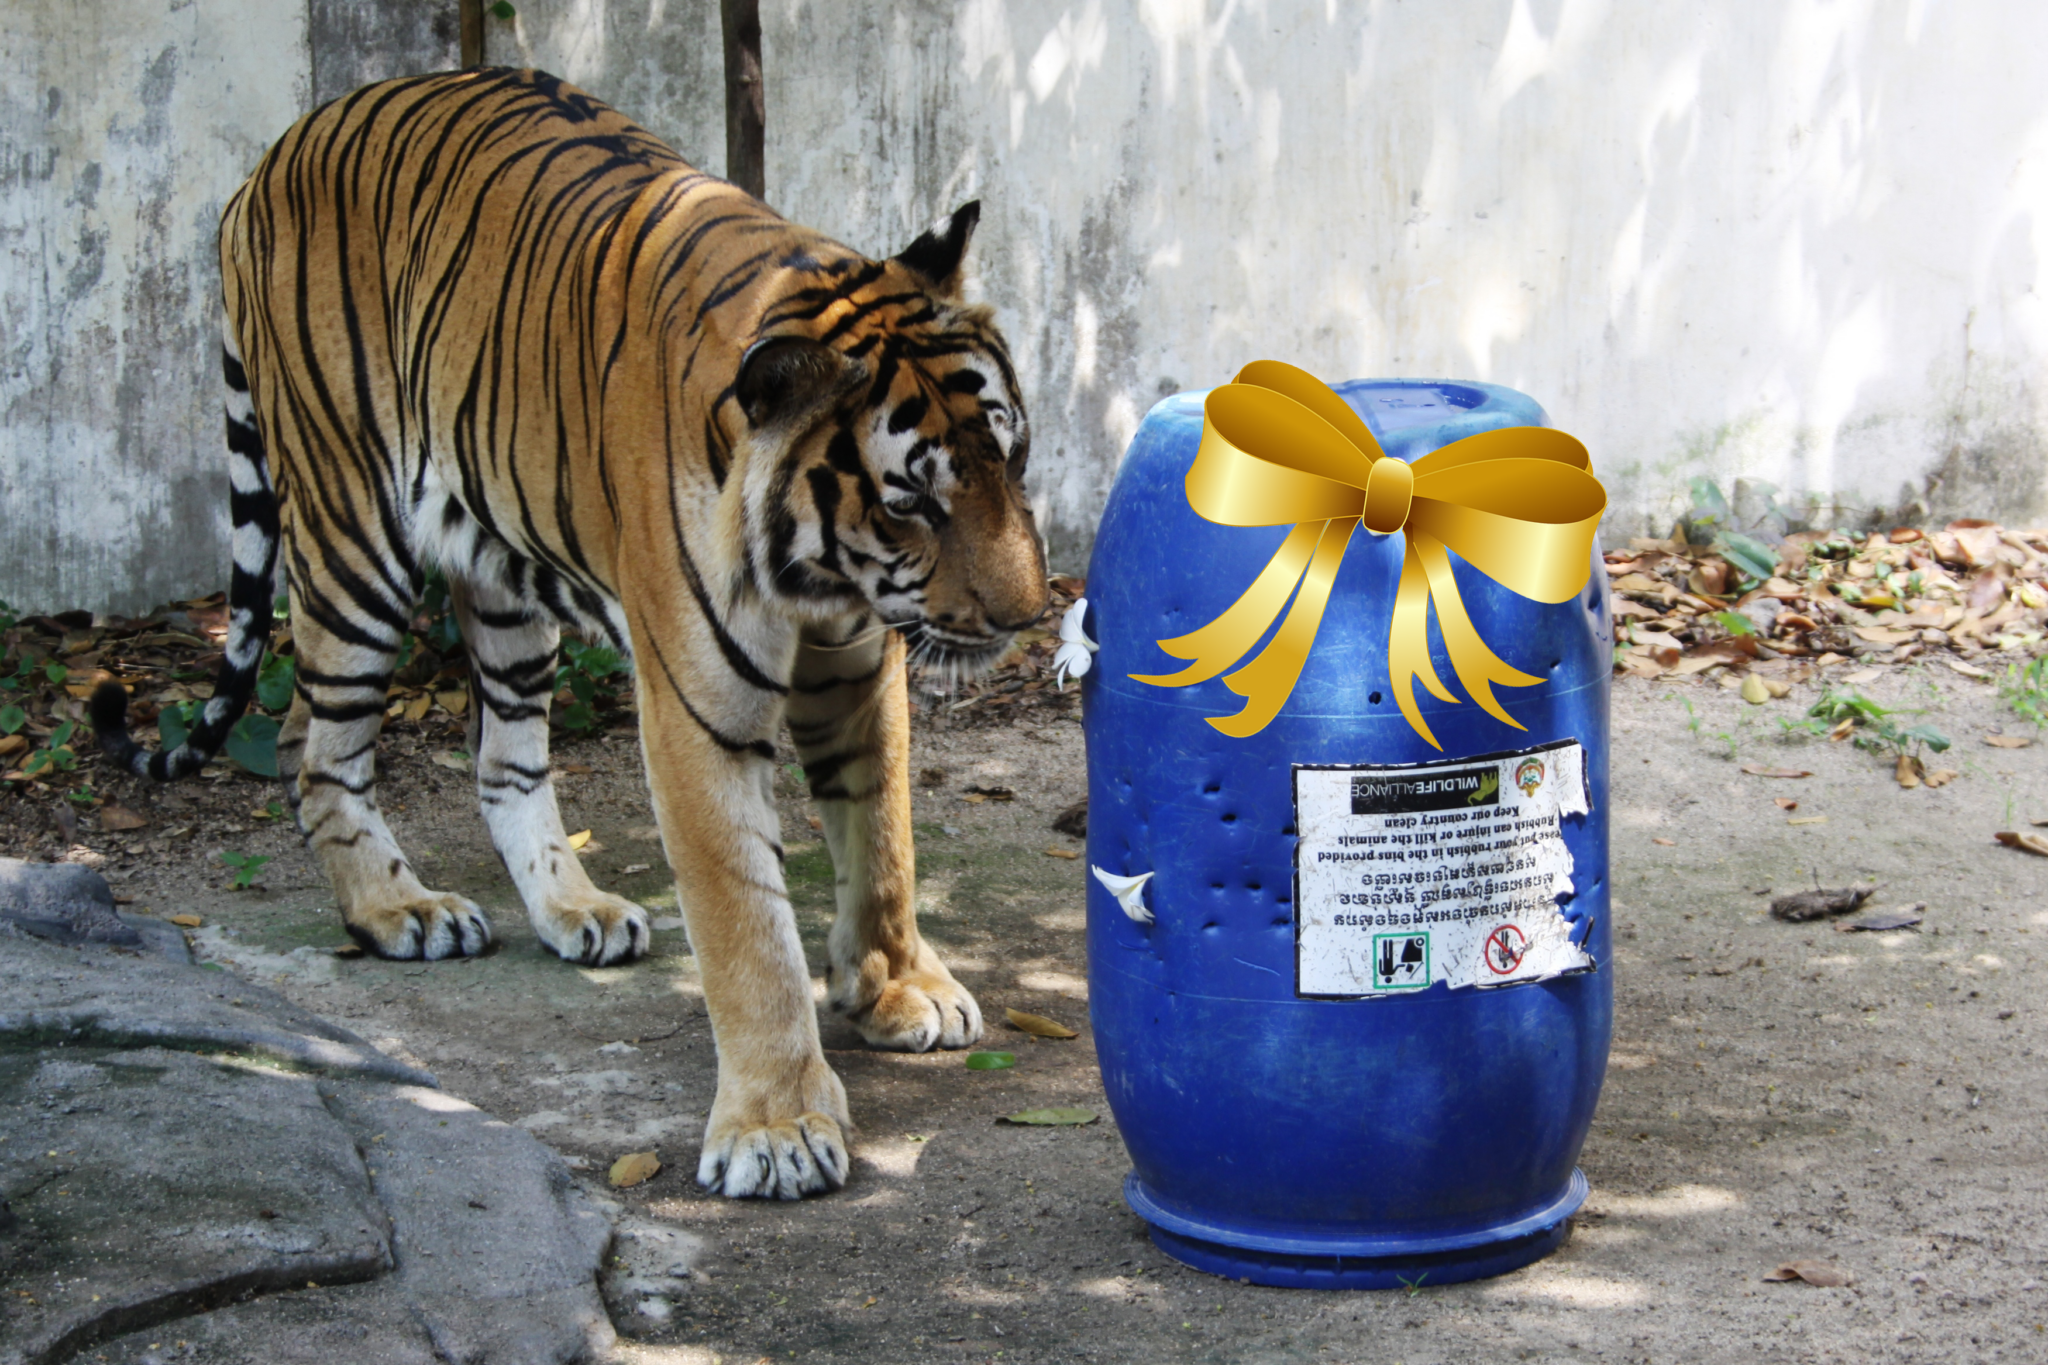 Tiger with barrel enrichment Wildlife Alliance Cambodia Phnom Tamao Wildlife Rescue Centre git bow Mother's Day 2021